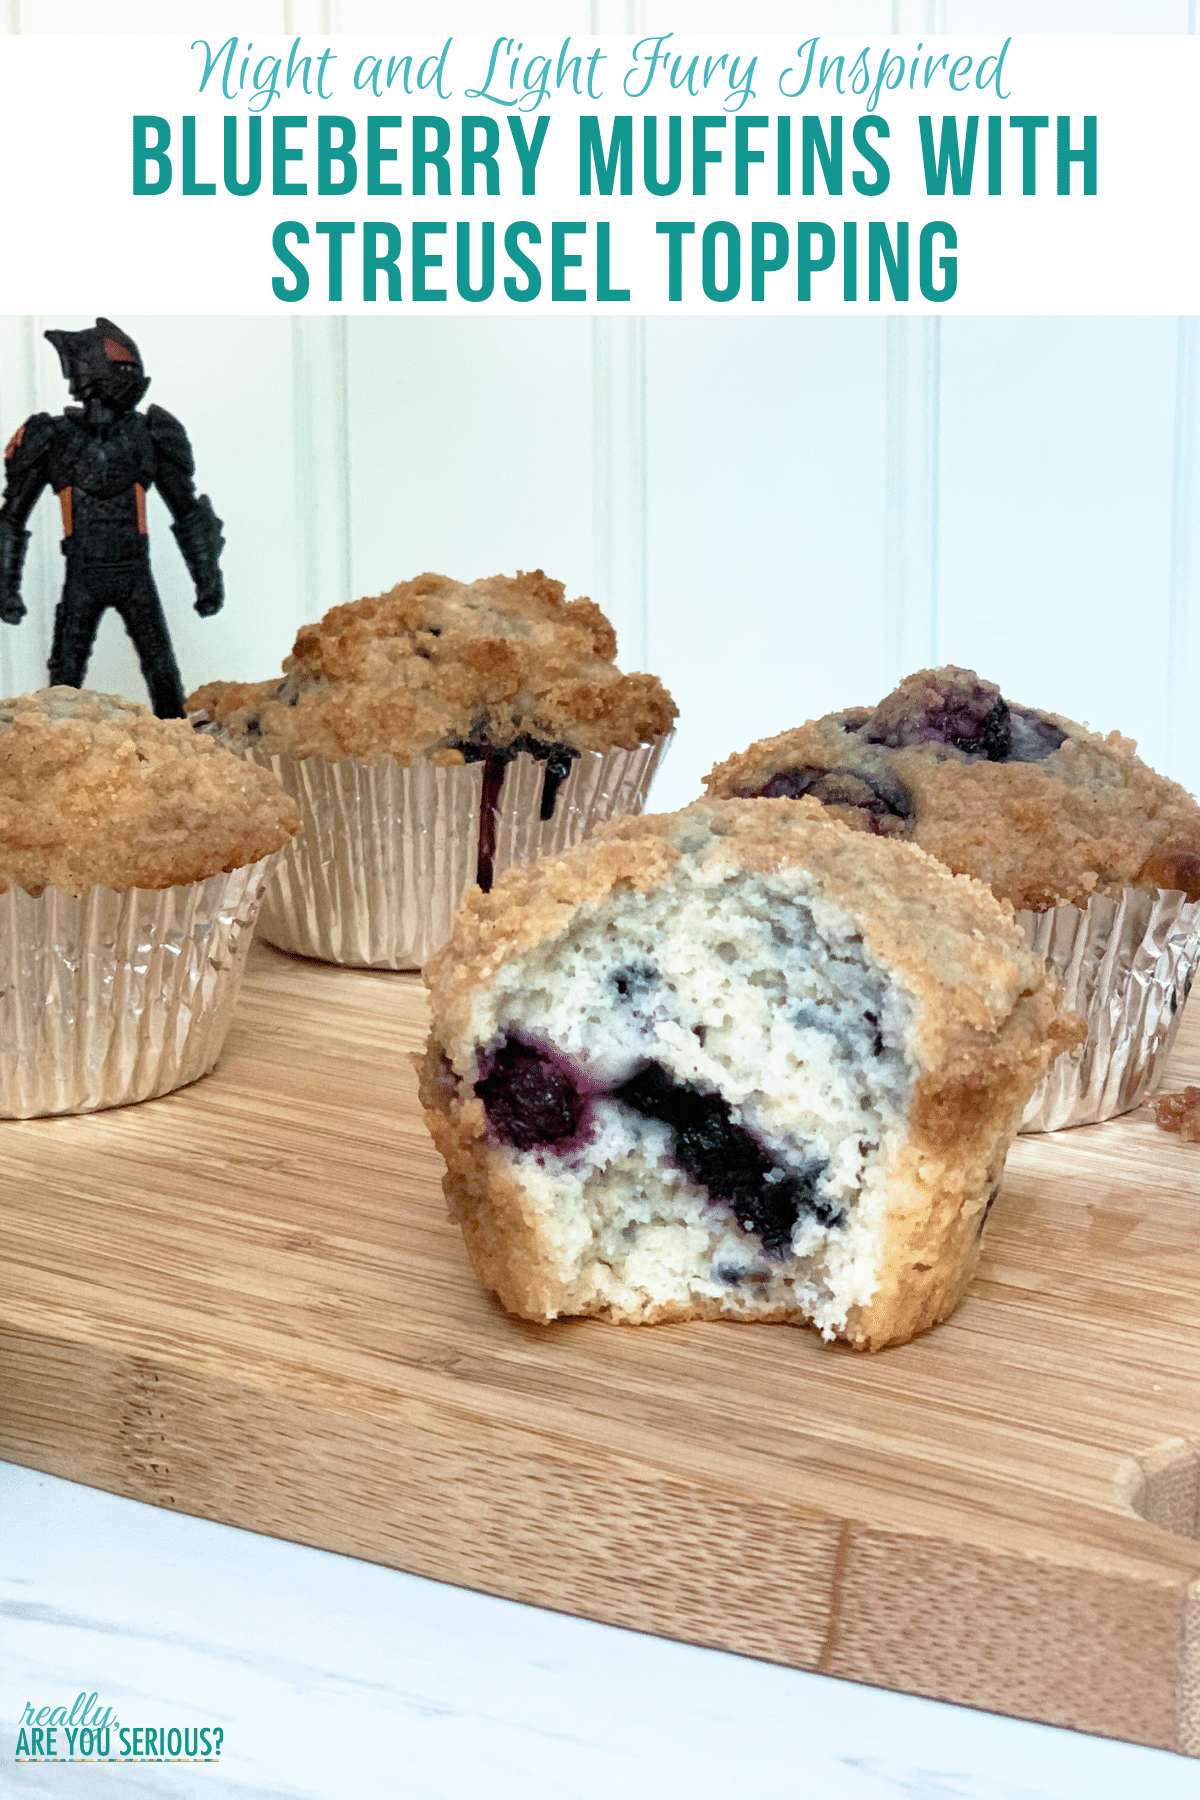 Blueberry Muffins with Streusel Topping inspired by Night and Light Fury